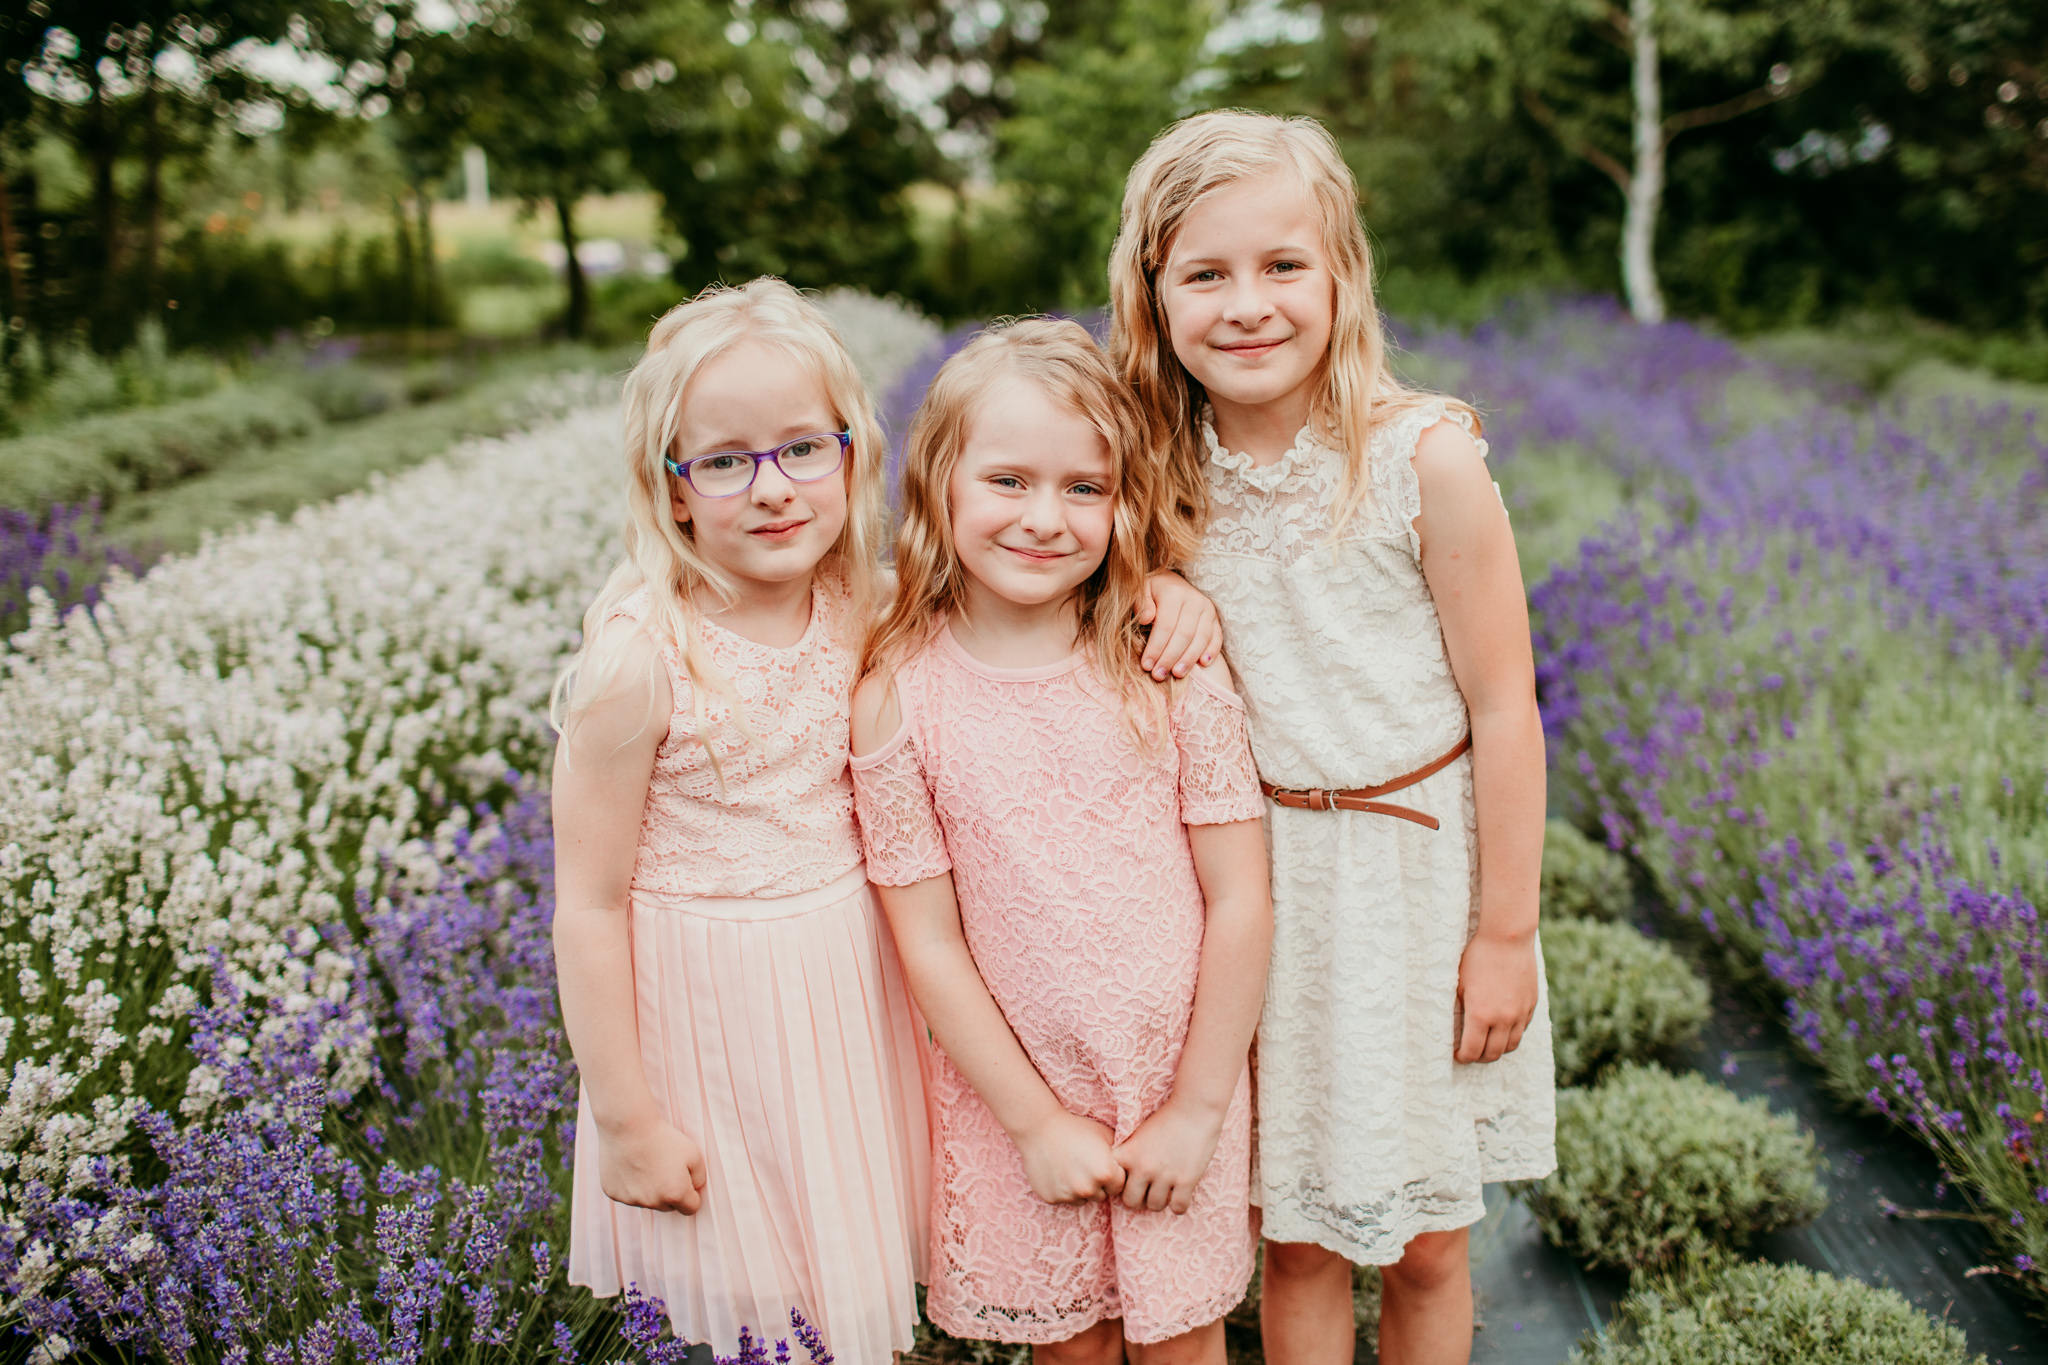 three sisters hugging together while standing in a lavender field